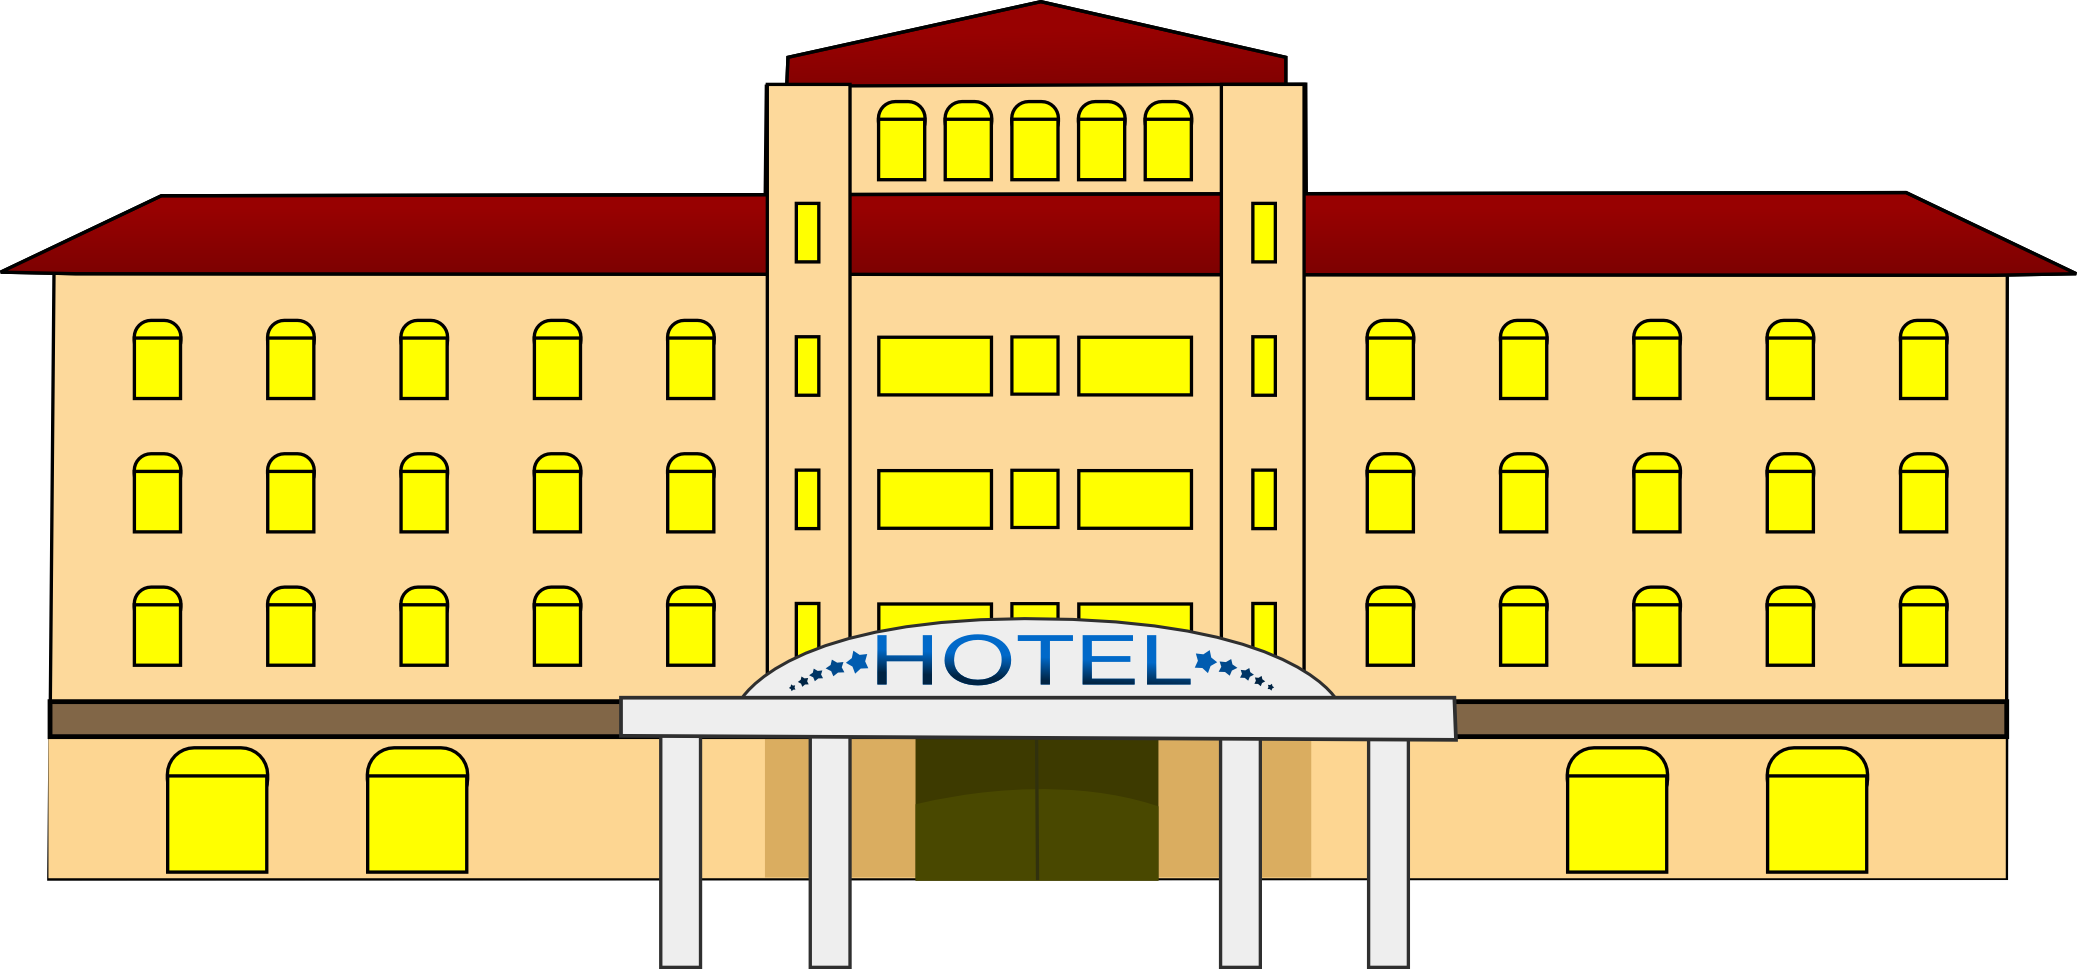 Hotel Clipart & Hotel Clip Art Images.